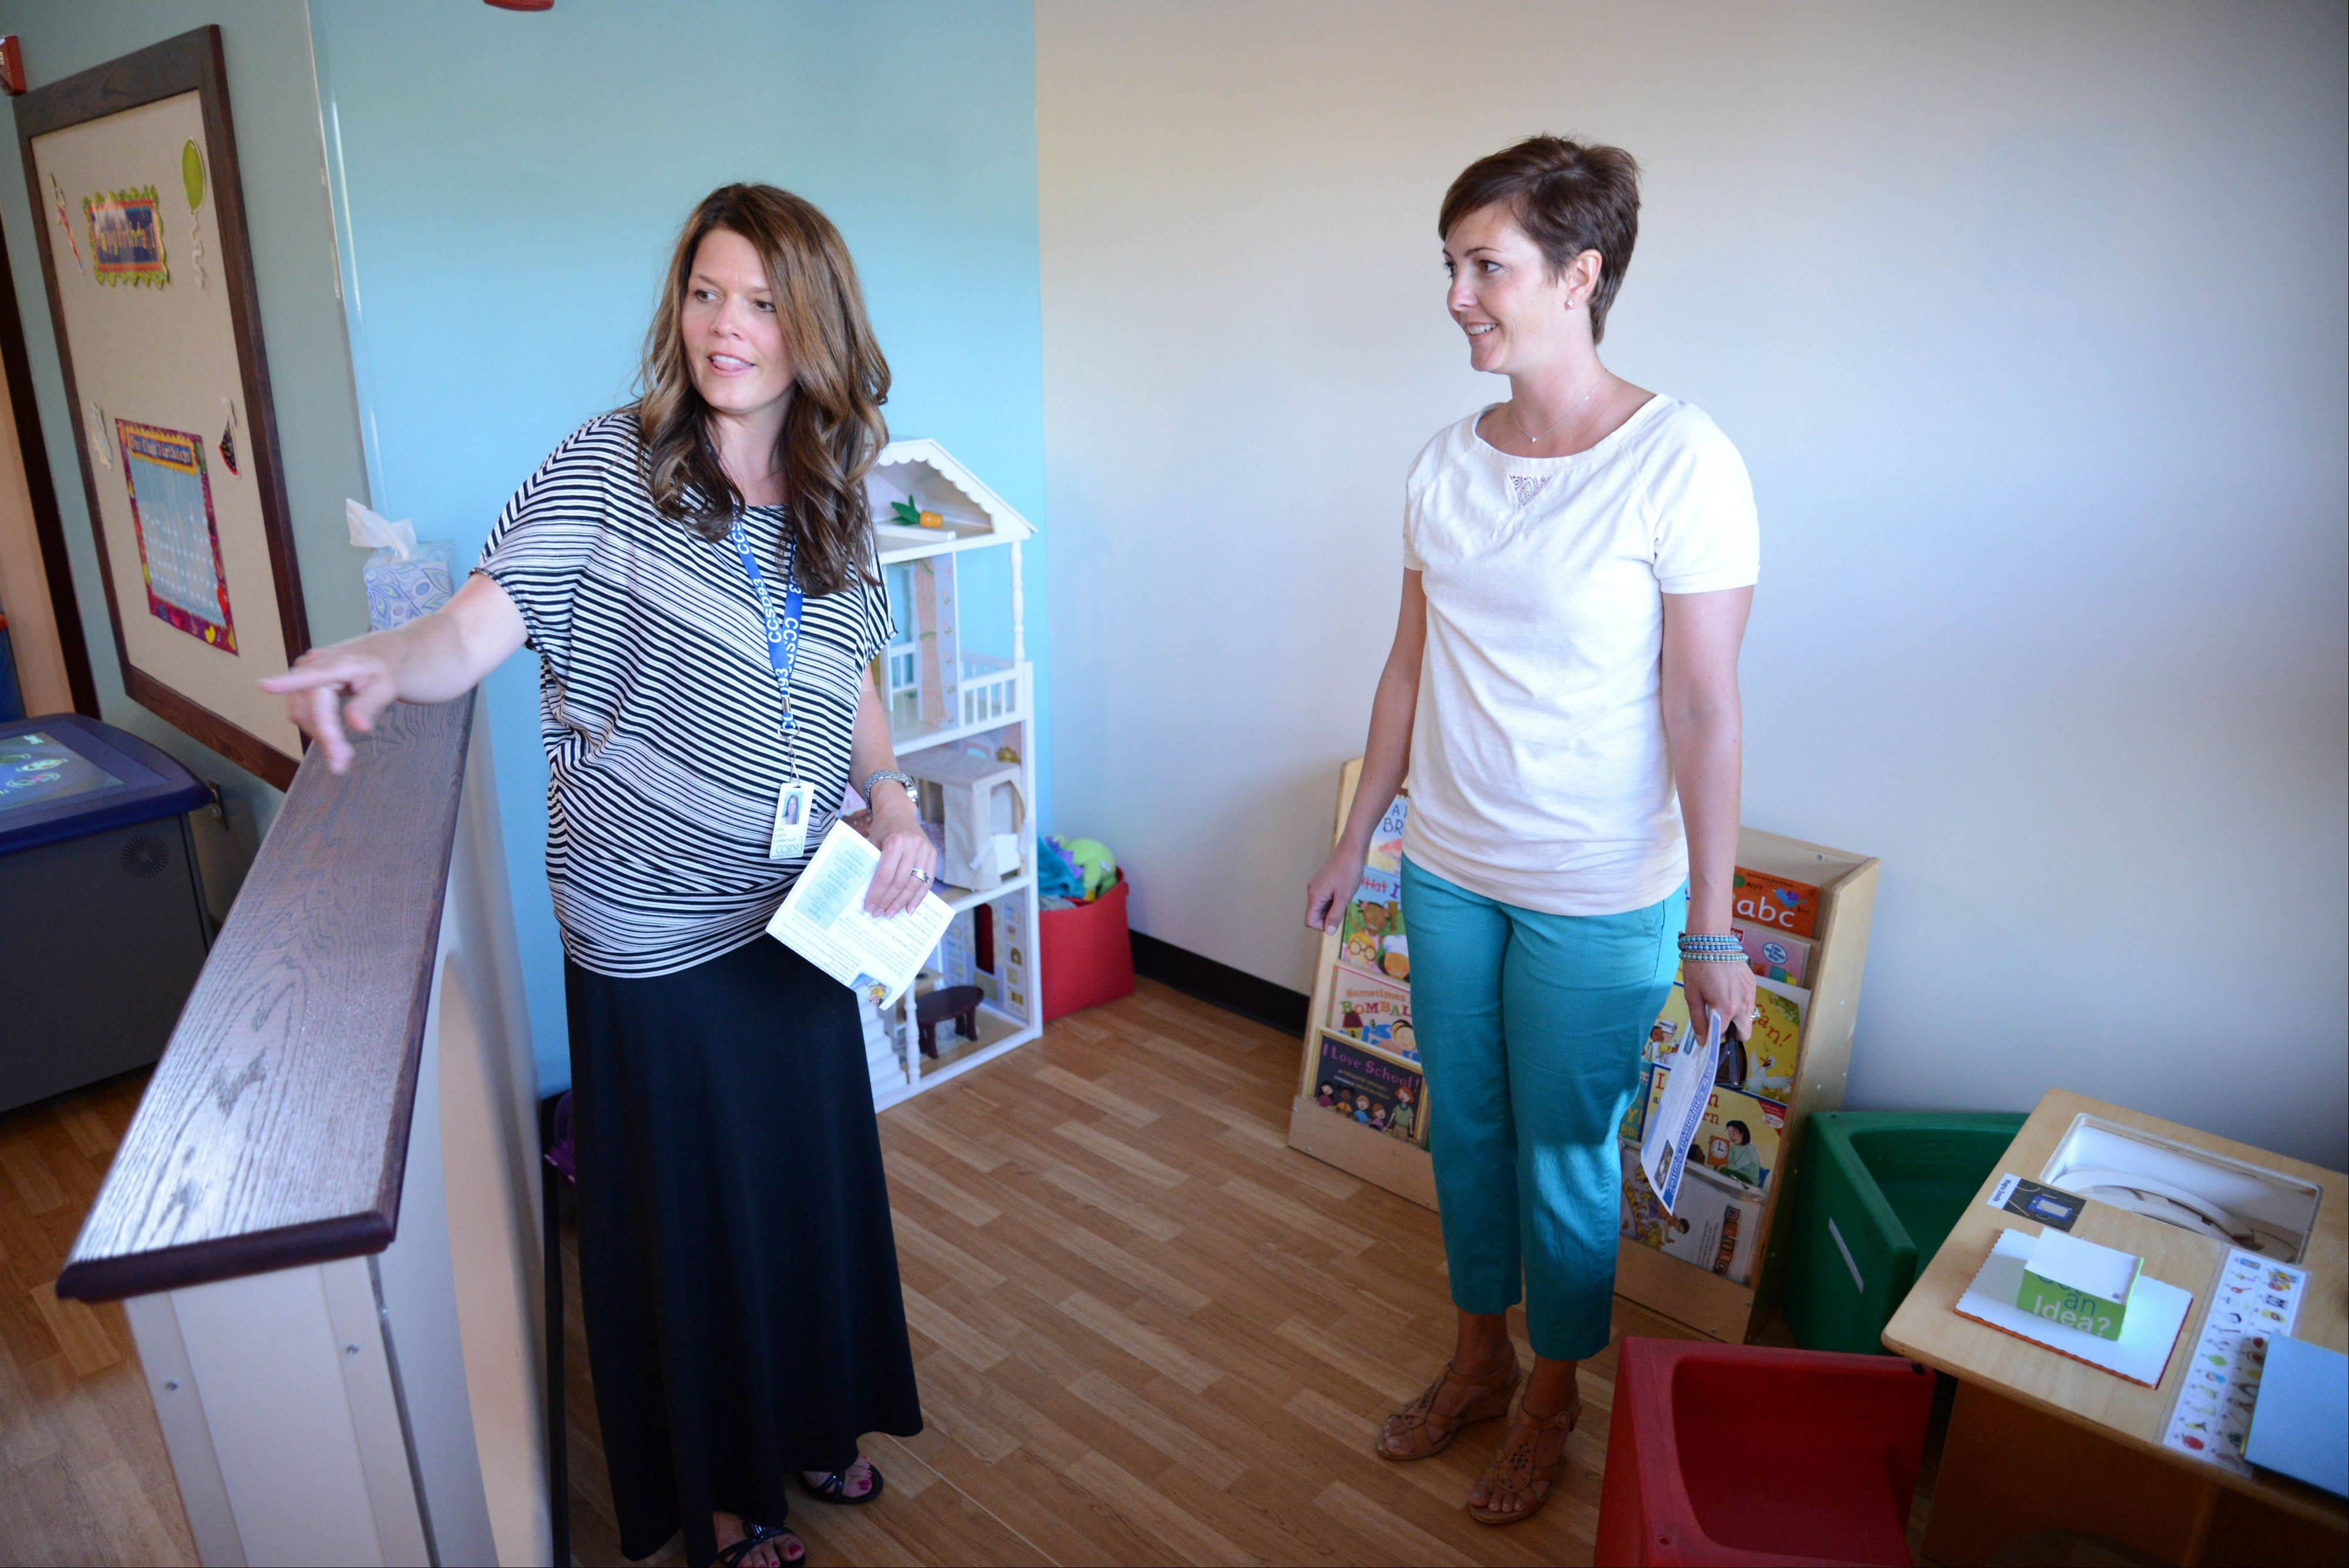 Teacher Lisa Lally, left, shows Nichole Palumbo of Carol Stream a classroom at the new District 93 Early Childhood Center Tuesday night. The first day of school is Thursday.